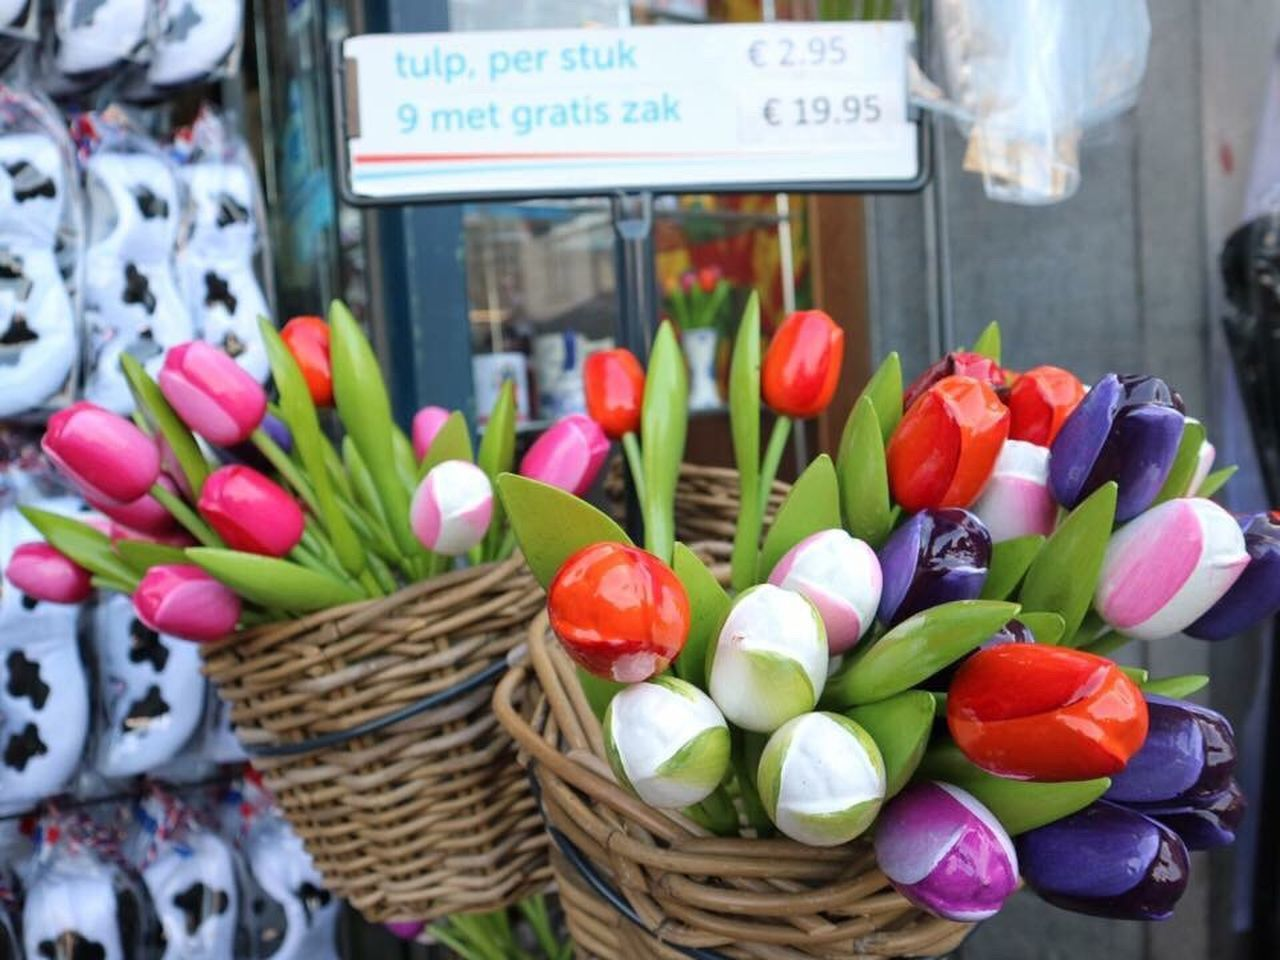 basket, freshness, day, flower, for sale, outdoors, petal, variation, retail, food, market, no people, multi colored, fragility, price tag, flower head, close-up